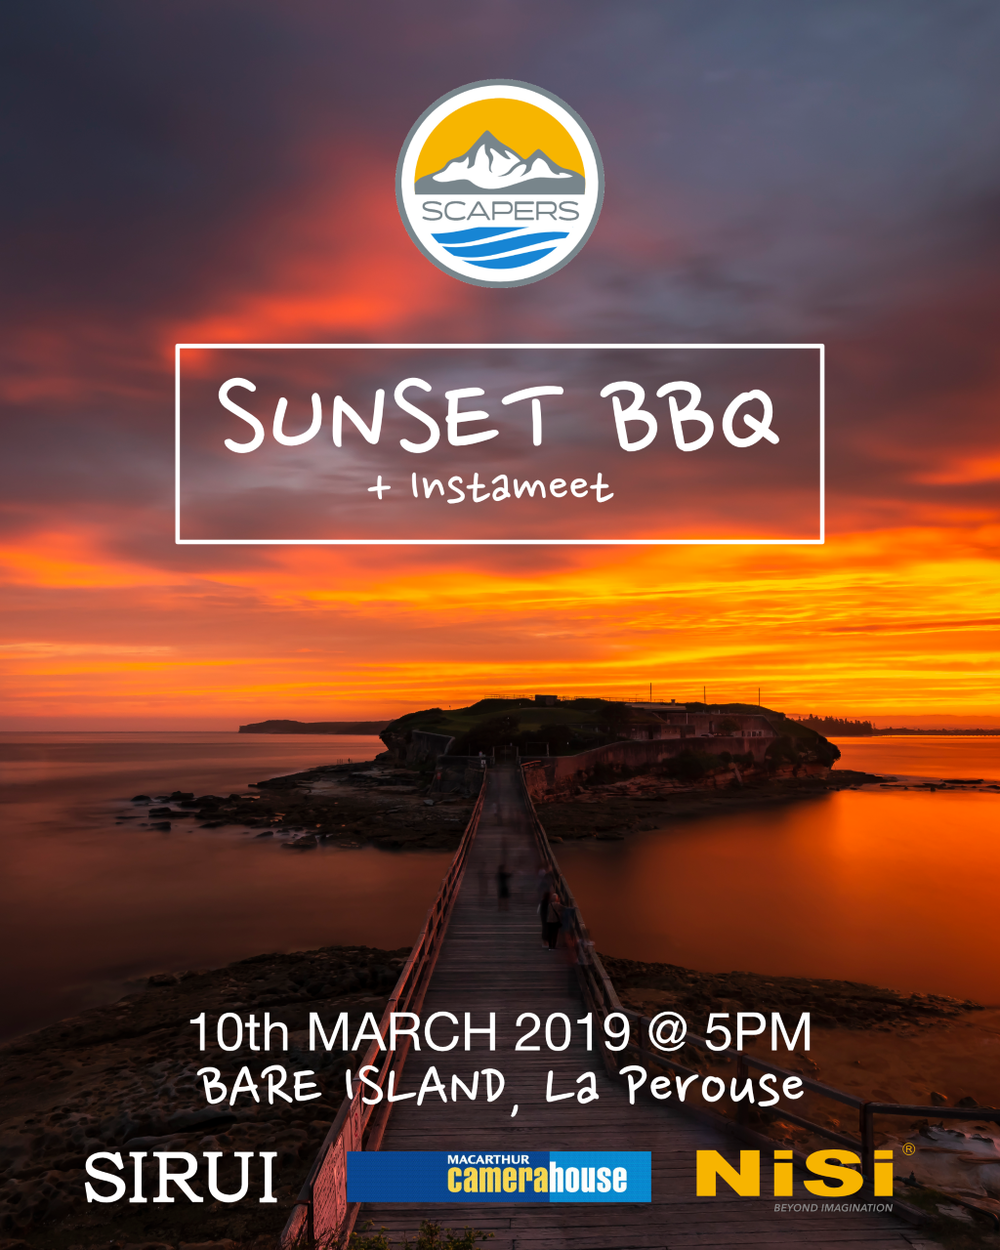 Sunset BBQ Meet - 10th March 2019 - Our first meet of 2019 and we're excited to announce that our sponsors Nisi, Sirui & MacArthur Camerahouse are throwing in some incredible prizes once again.Join us at Bare Island, La Perouse on 10th March at 5pm for a bbq and chat followed by a Sunset shoot around the Island.Andrew from Nisi will be there on hand lending out gear to anyone who wishes to try out some filters!Prizes will be drawn at random(must register) so you don't want to miss out on this! Please register your attendance to be in the running for the prizes and subscribe to Ozscapers so you are kept up to date with all our upcoming events this year! See you all there!